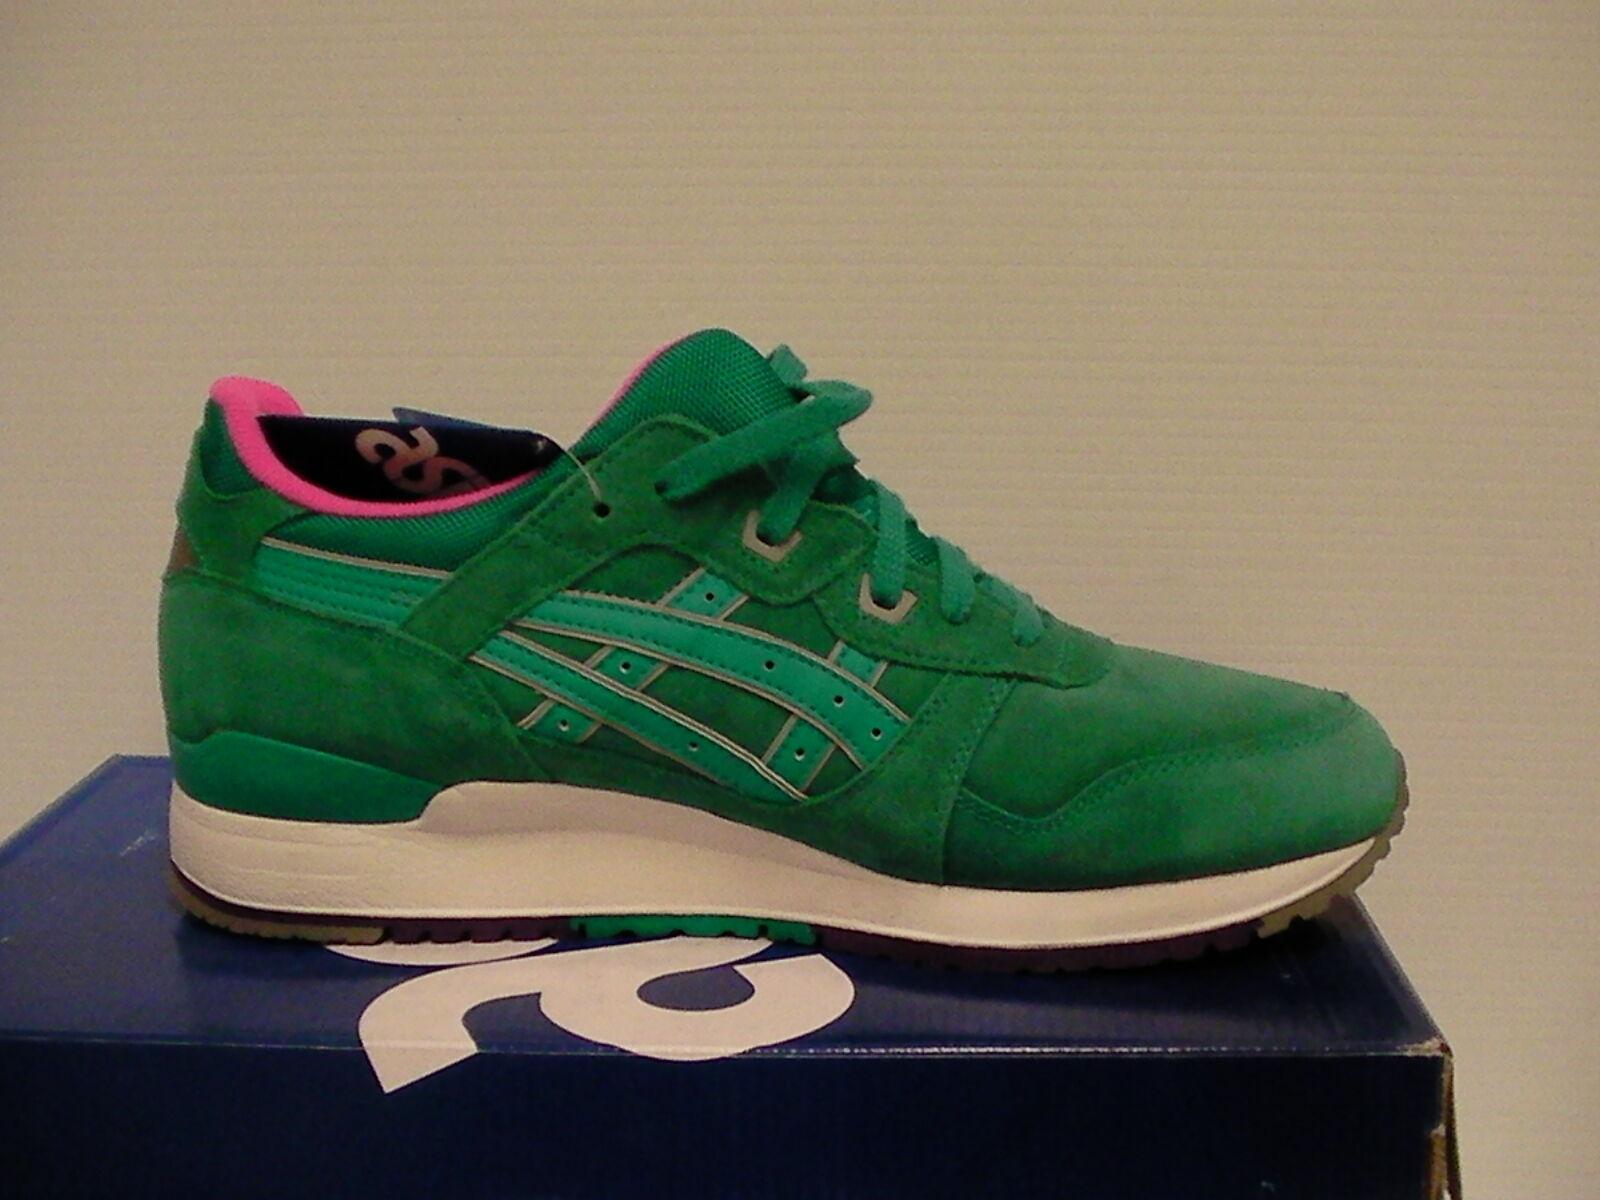 Asics running shoes gel-lyte iii size 9.5 us Uomo tropical green new with box